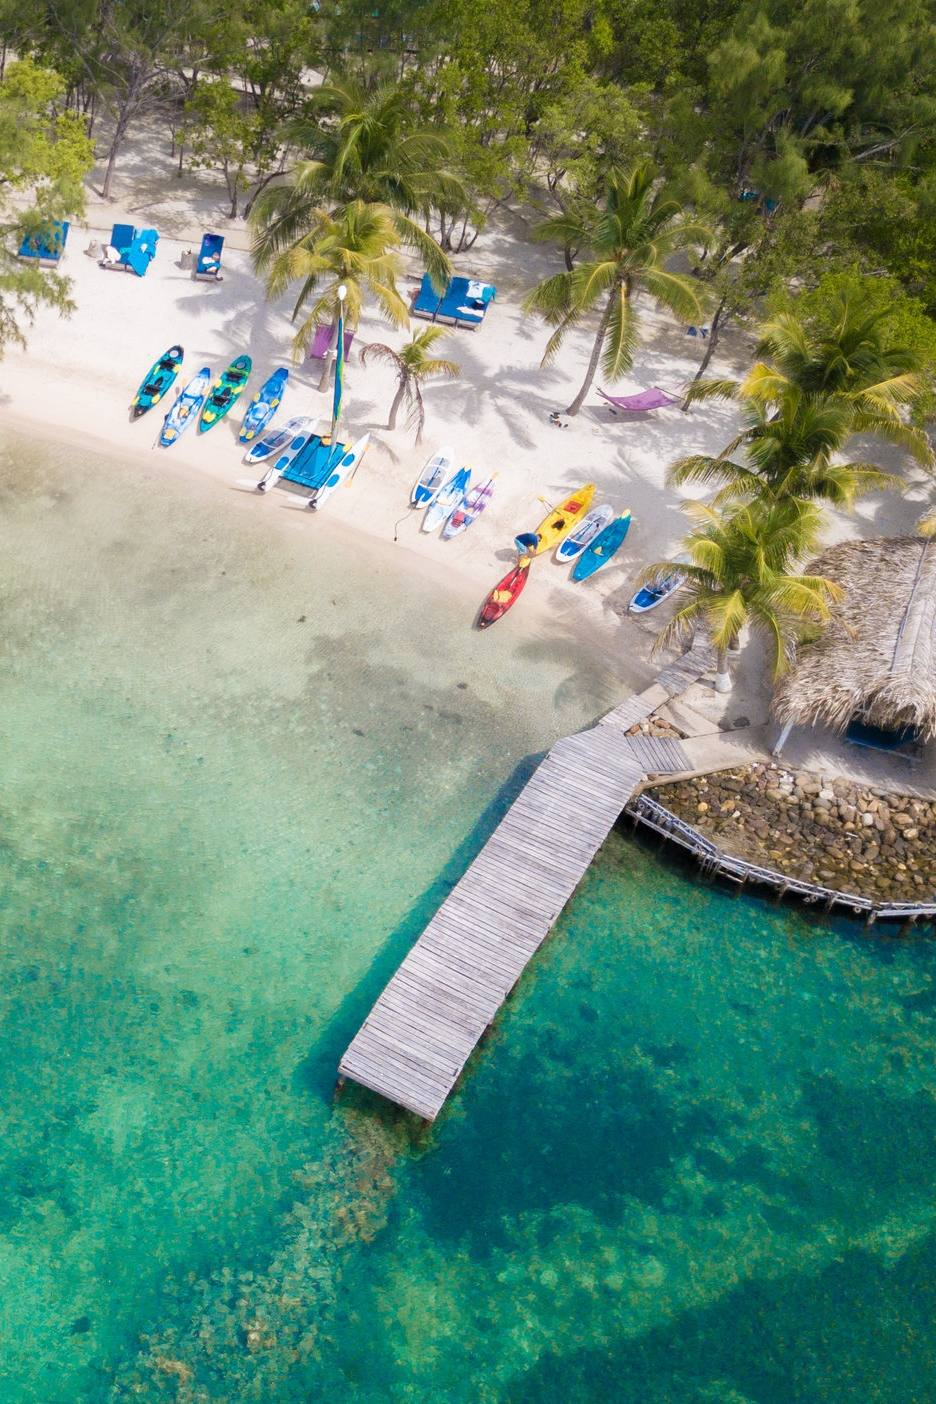 Thatch Caye Resort - Overwater bungalows and island adventures await